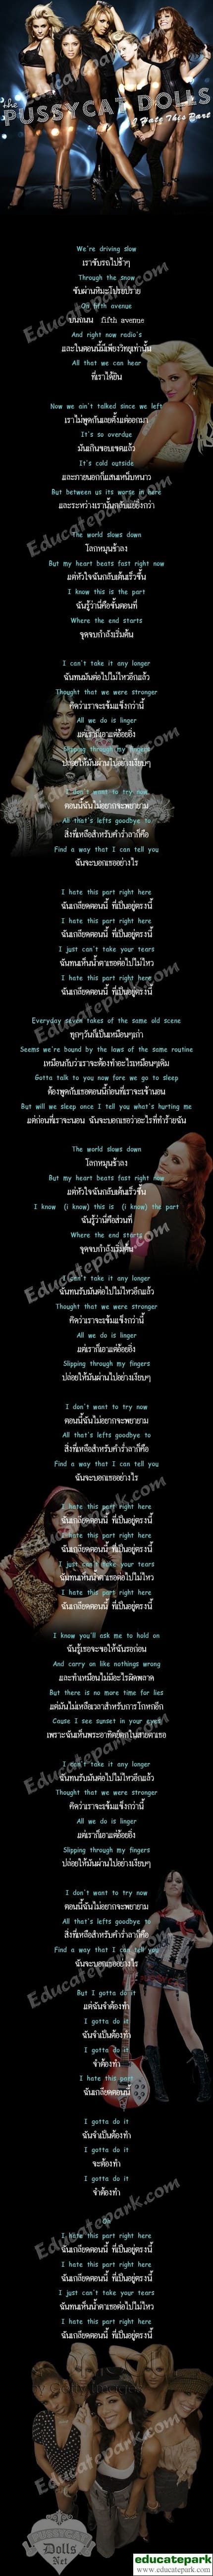 แปลเพลง I Hate This Part -The Pussycat Dolls